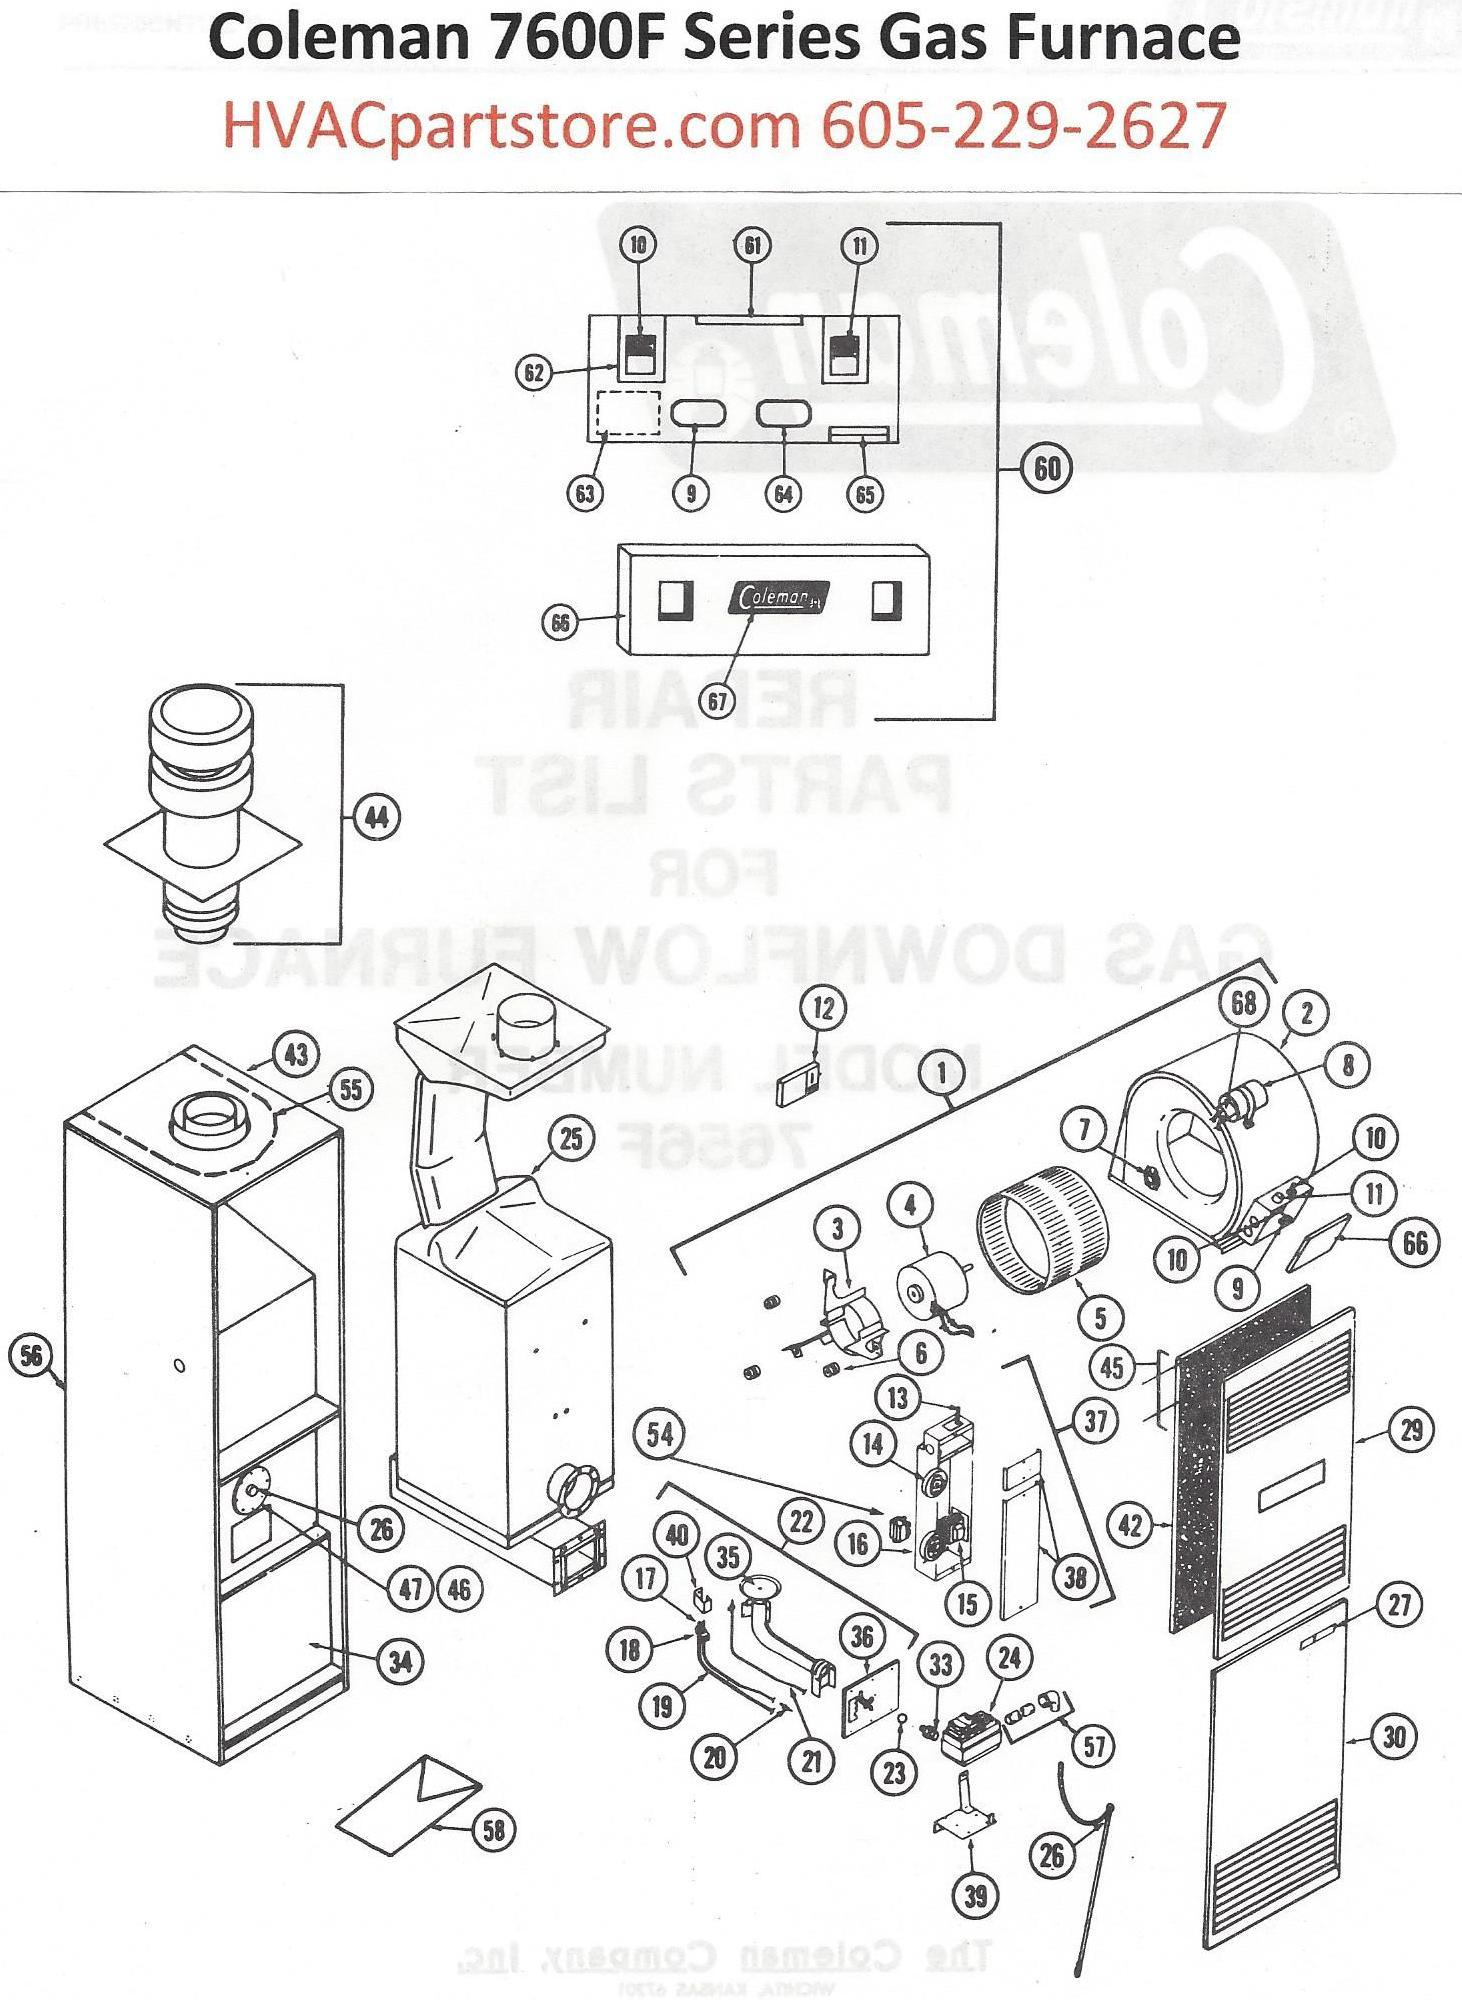 Coleman Furnace Wiring Diagram from static-resources.imageservice.cloud